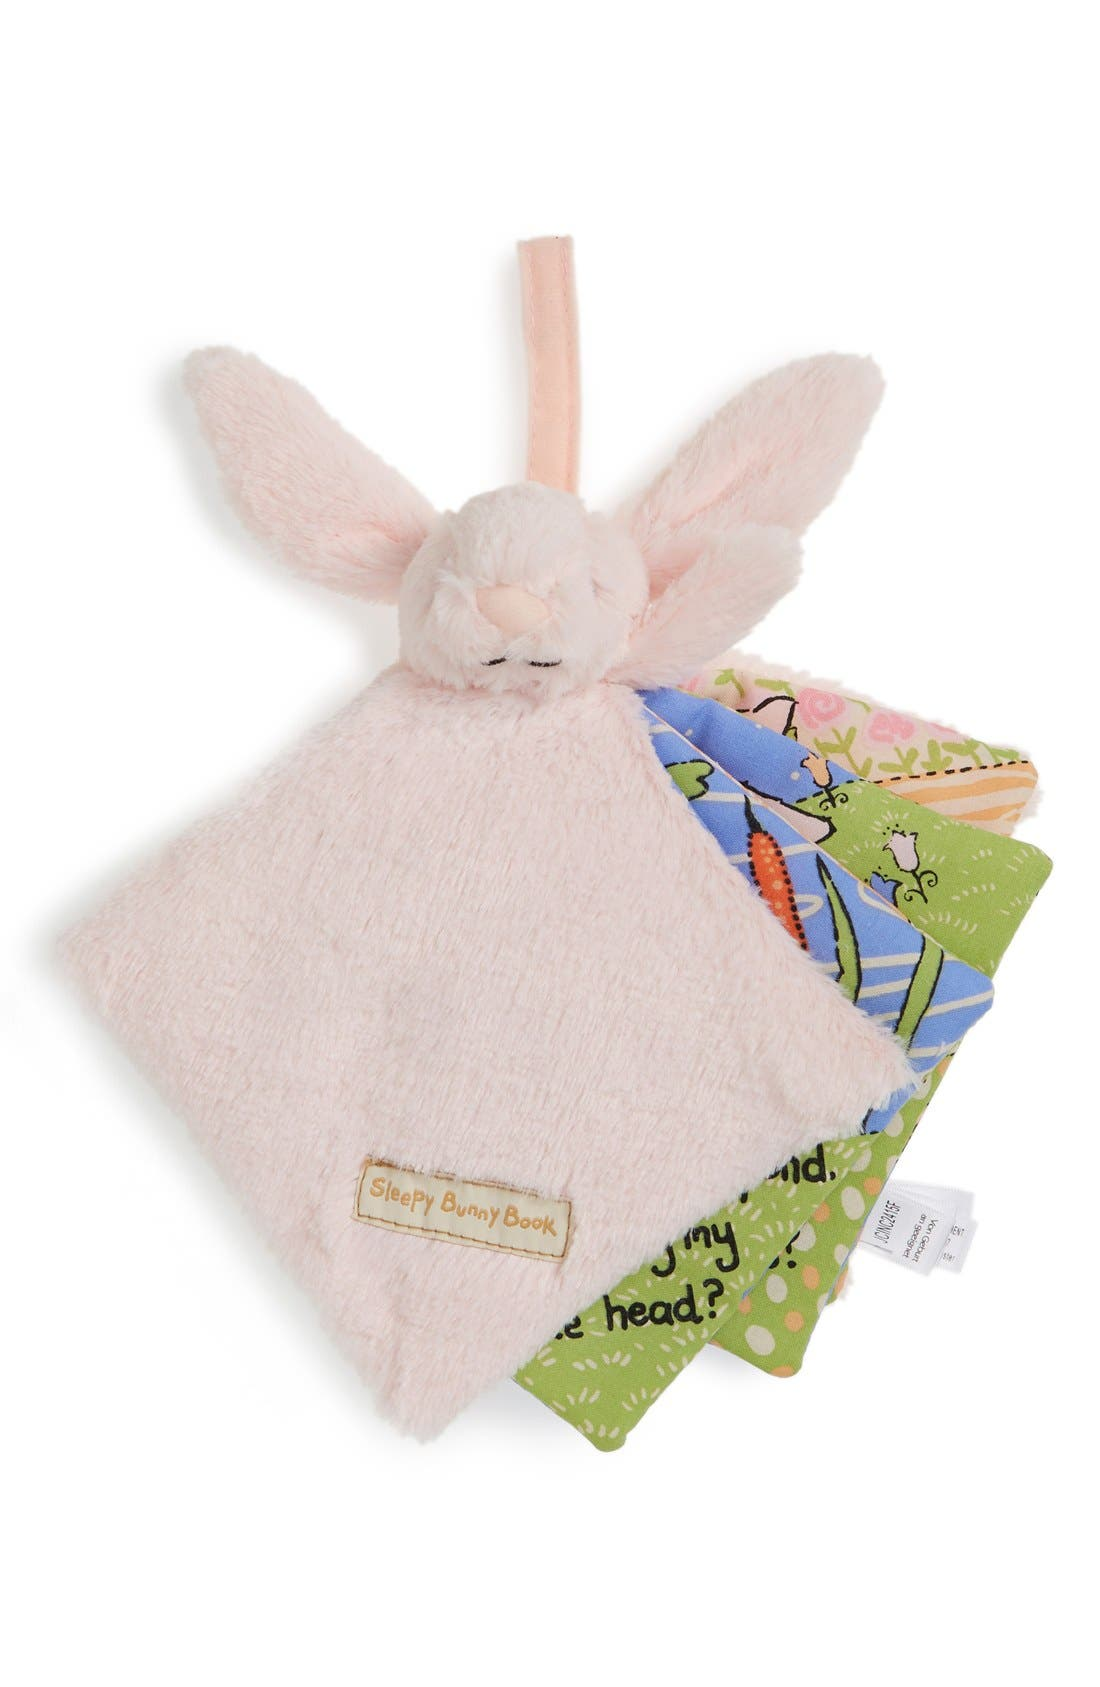 Alternate Image 1 Selected - 'Sleepy Bunny' Soft Fabric Book